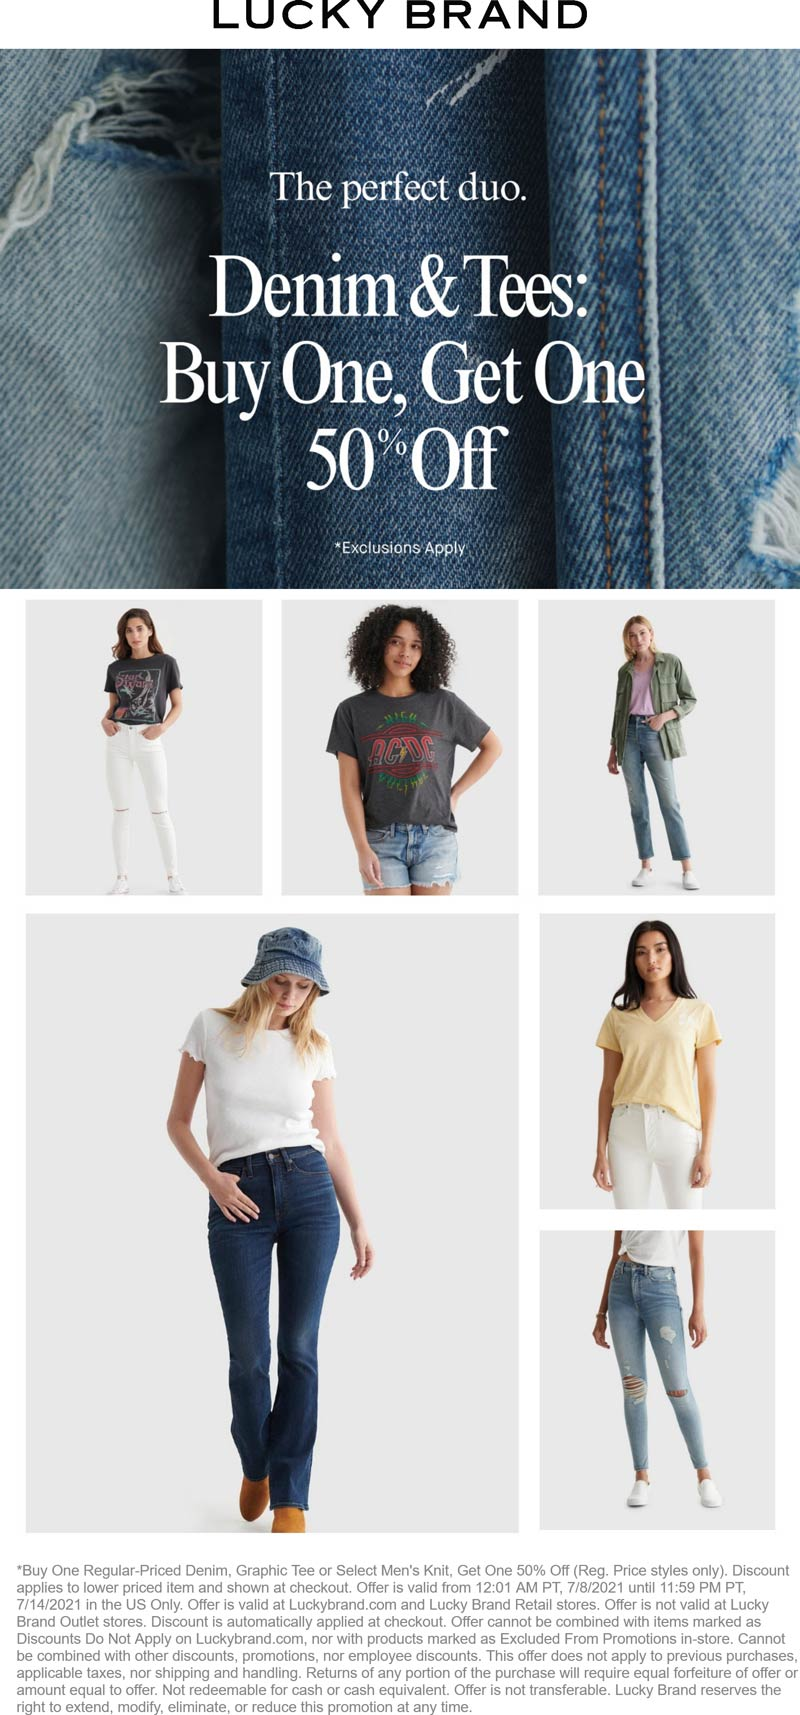 Lucky Brand stores Coupon  Second denim & tee 50% off at Lucky Brand, ditto online #luckybrand